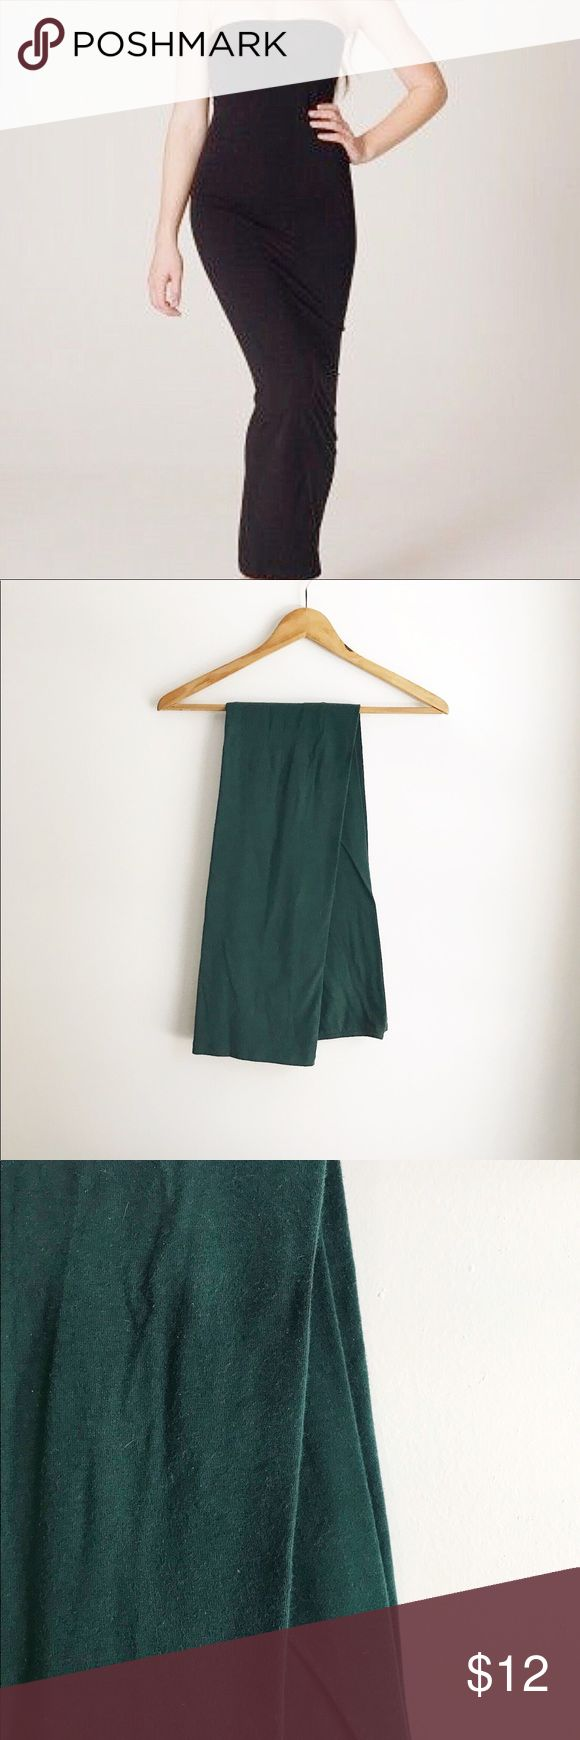 American Apparel Green Tube Dress The classic tube dress from now defunct American Apparel. This style has been a staple layering piece for me for years. Stretchy, comfy, sexy. Great on its own or layered under tanks, sweaters, and more! Ever-so-slightly faded, but lots of wear left. *NOTE: this is NOT black, as in first photo, but is a deep hunter green.* Size M will fit approx. size 4-10. American Apparel Dresses Maxi